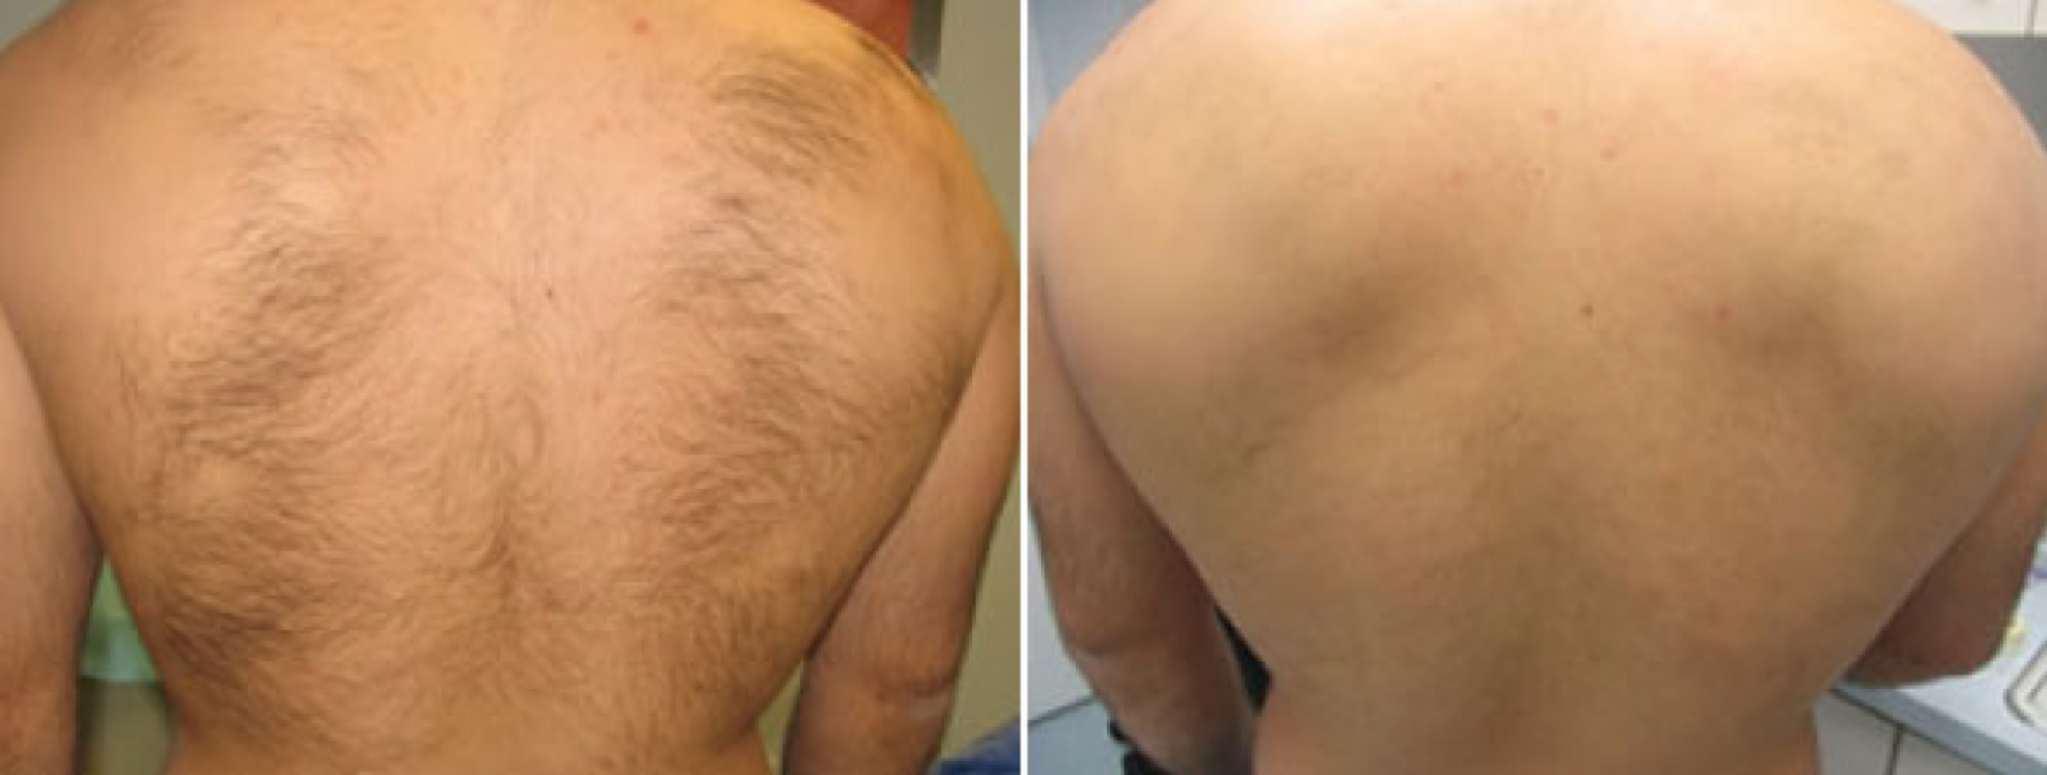 Brazilian Laser Hair Removal Before And After Photos 8